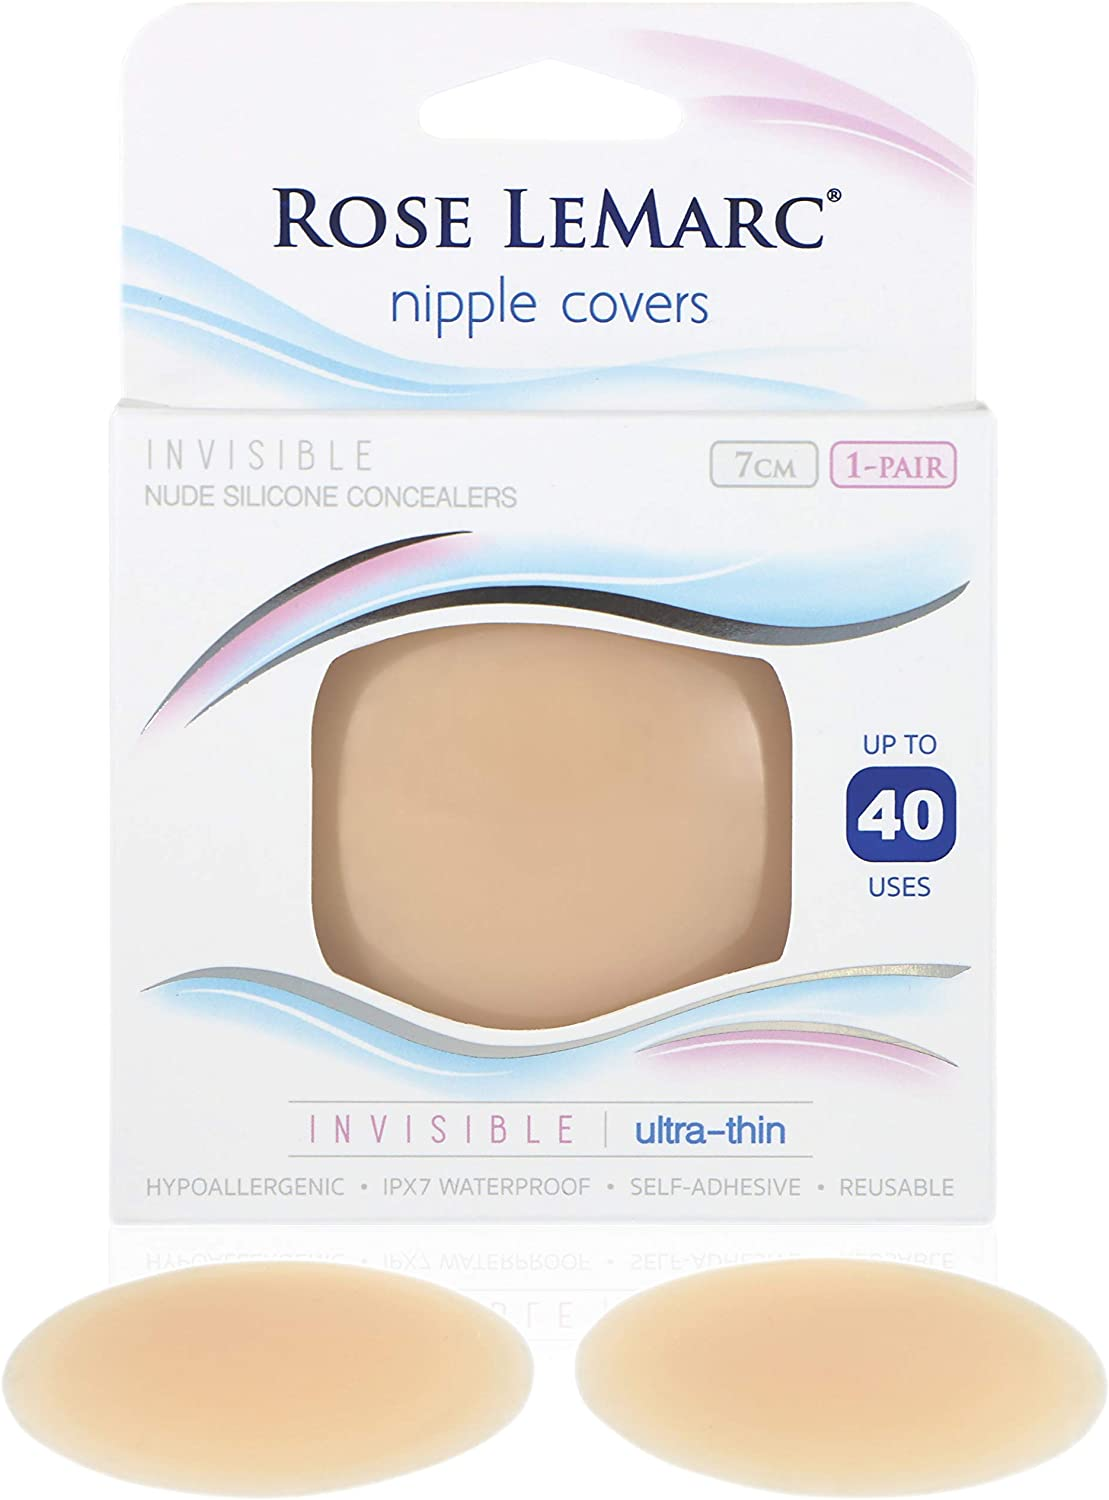 Rose LeMarc Invisible Nipple Covers Super Ultra-Thin Silicone Pasties Women Nude